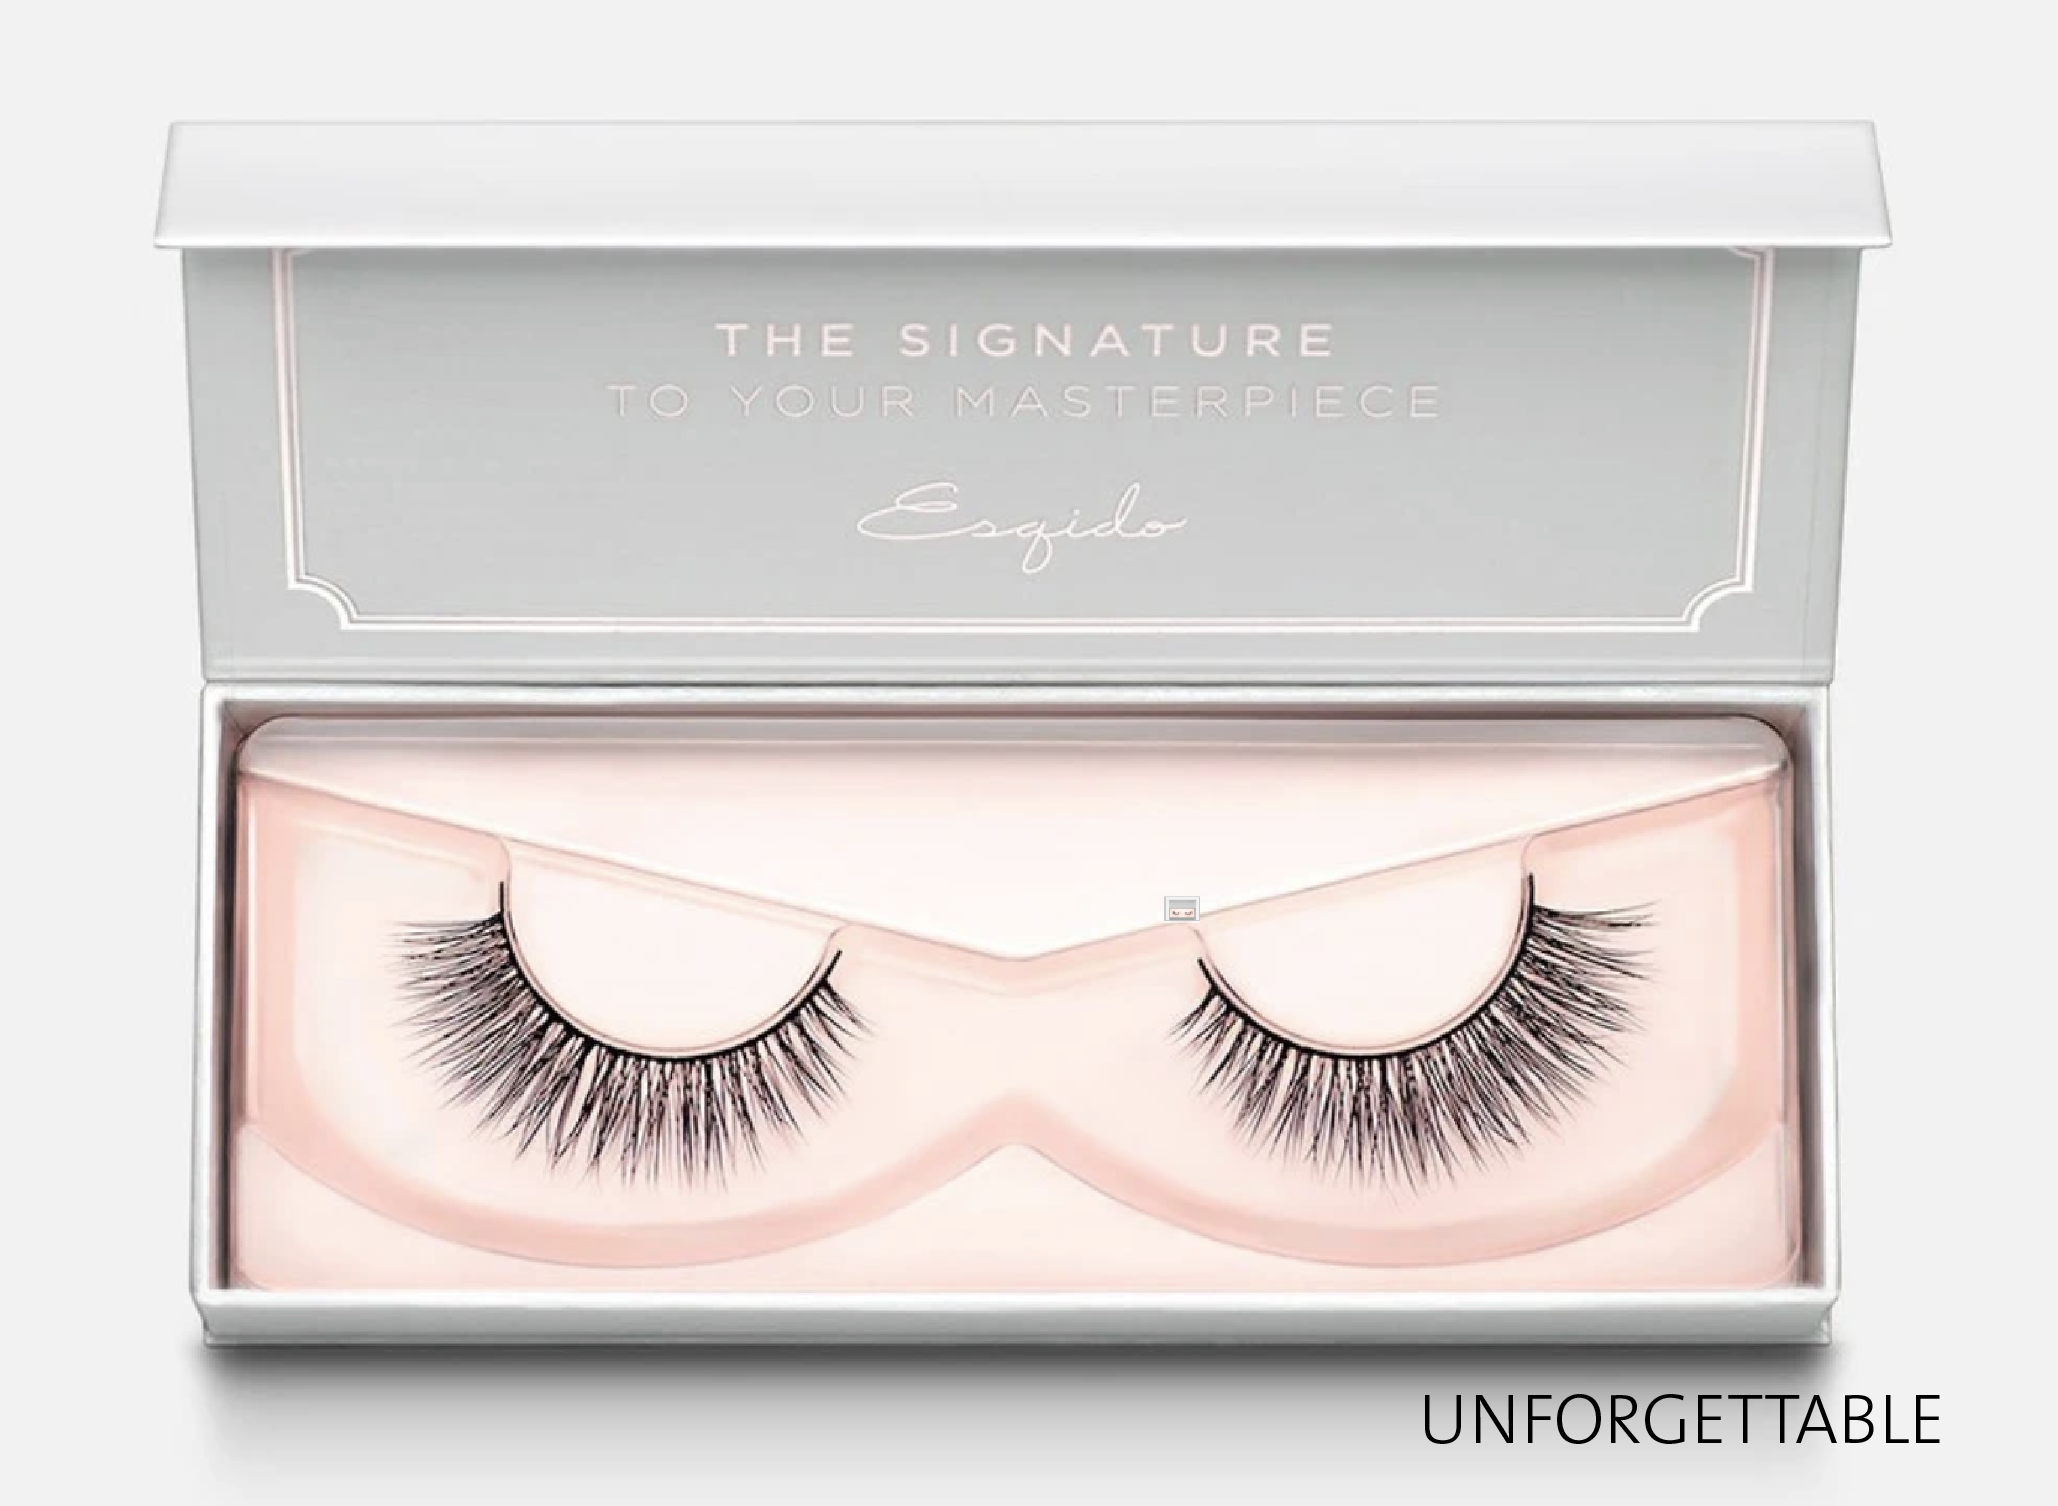 100 Unforgettable, lash glue, strip lashes, esqido, bare essentials, mink lashes, canadian made beauty